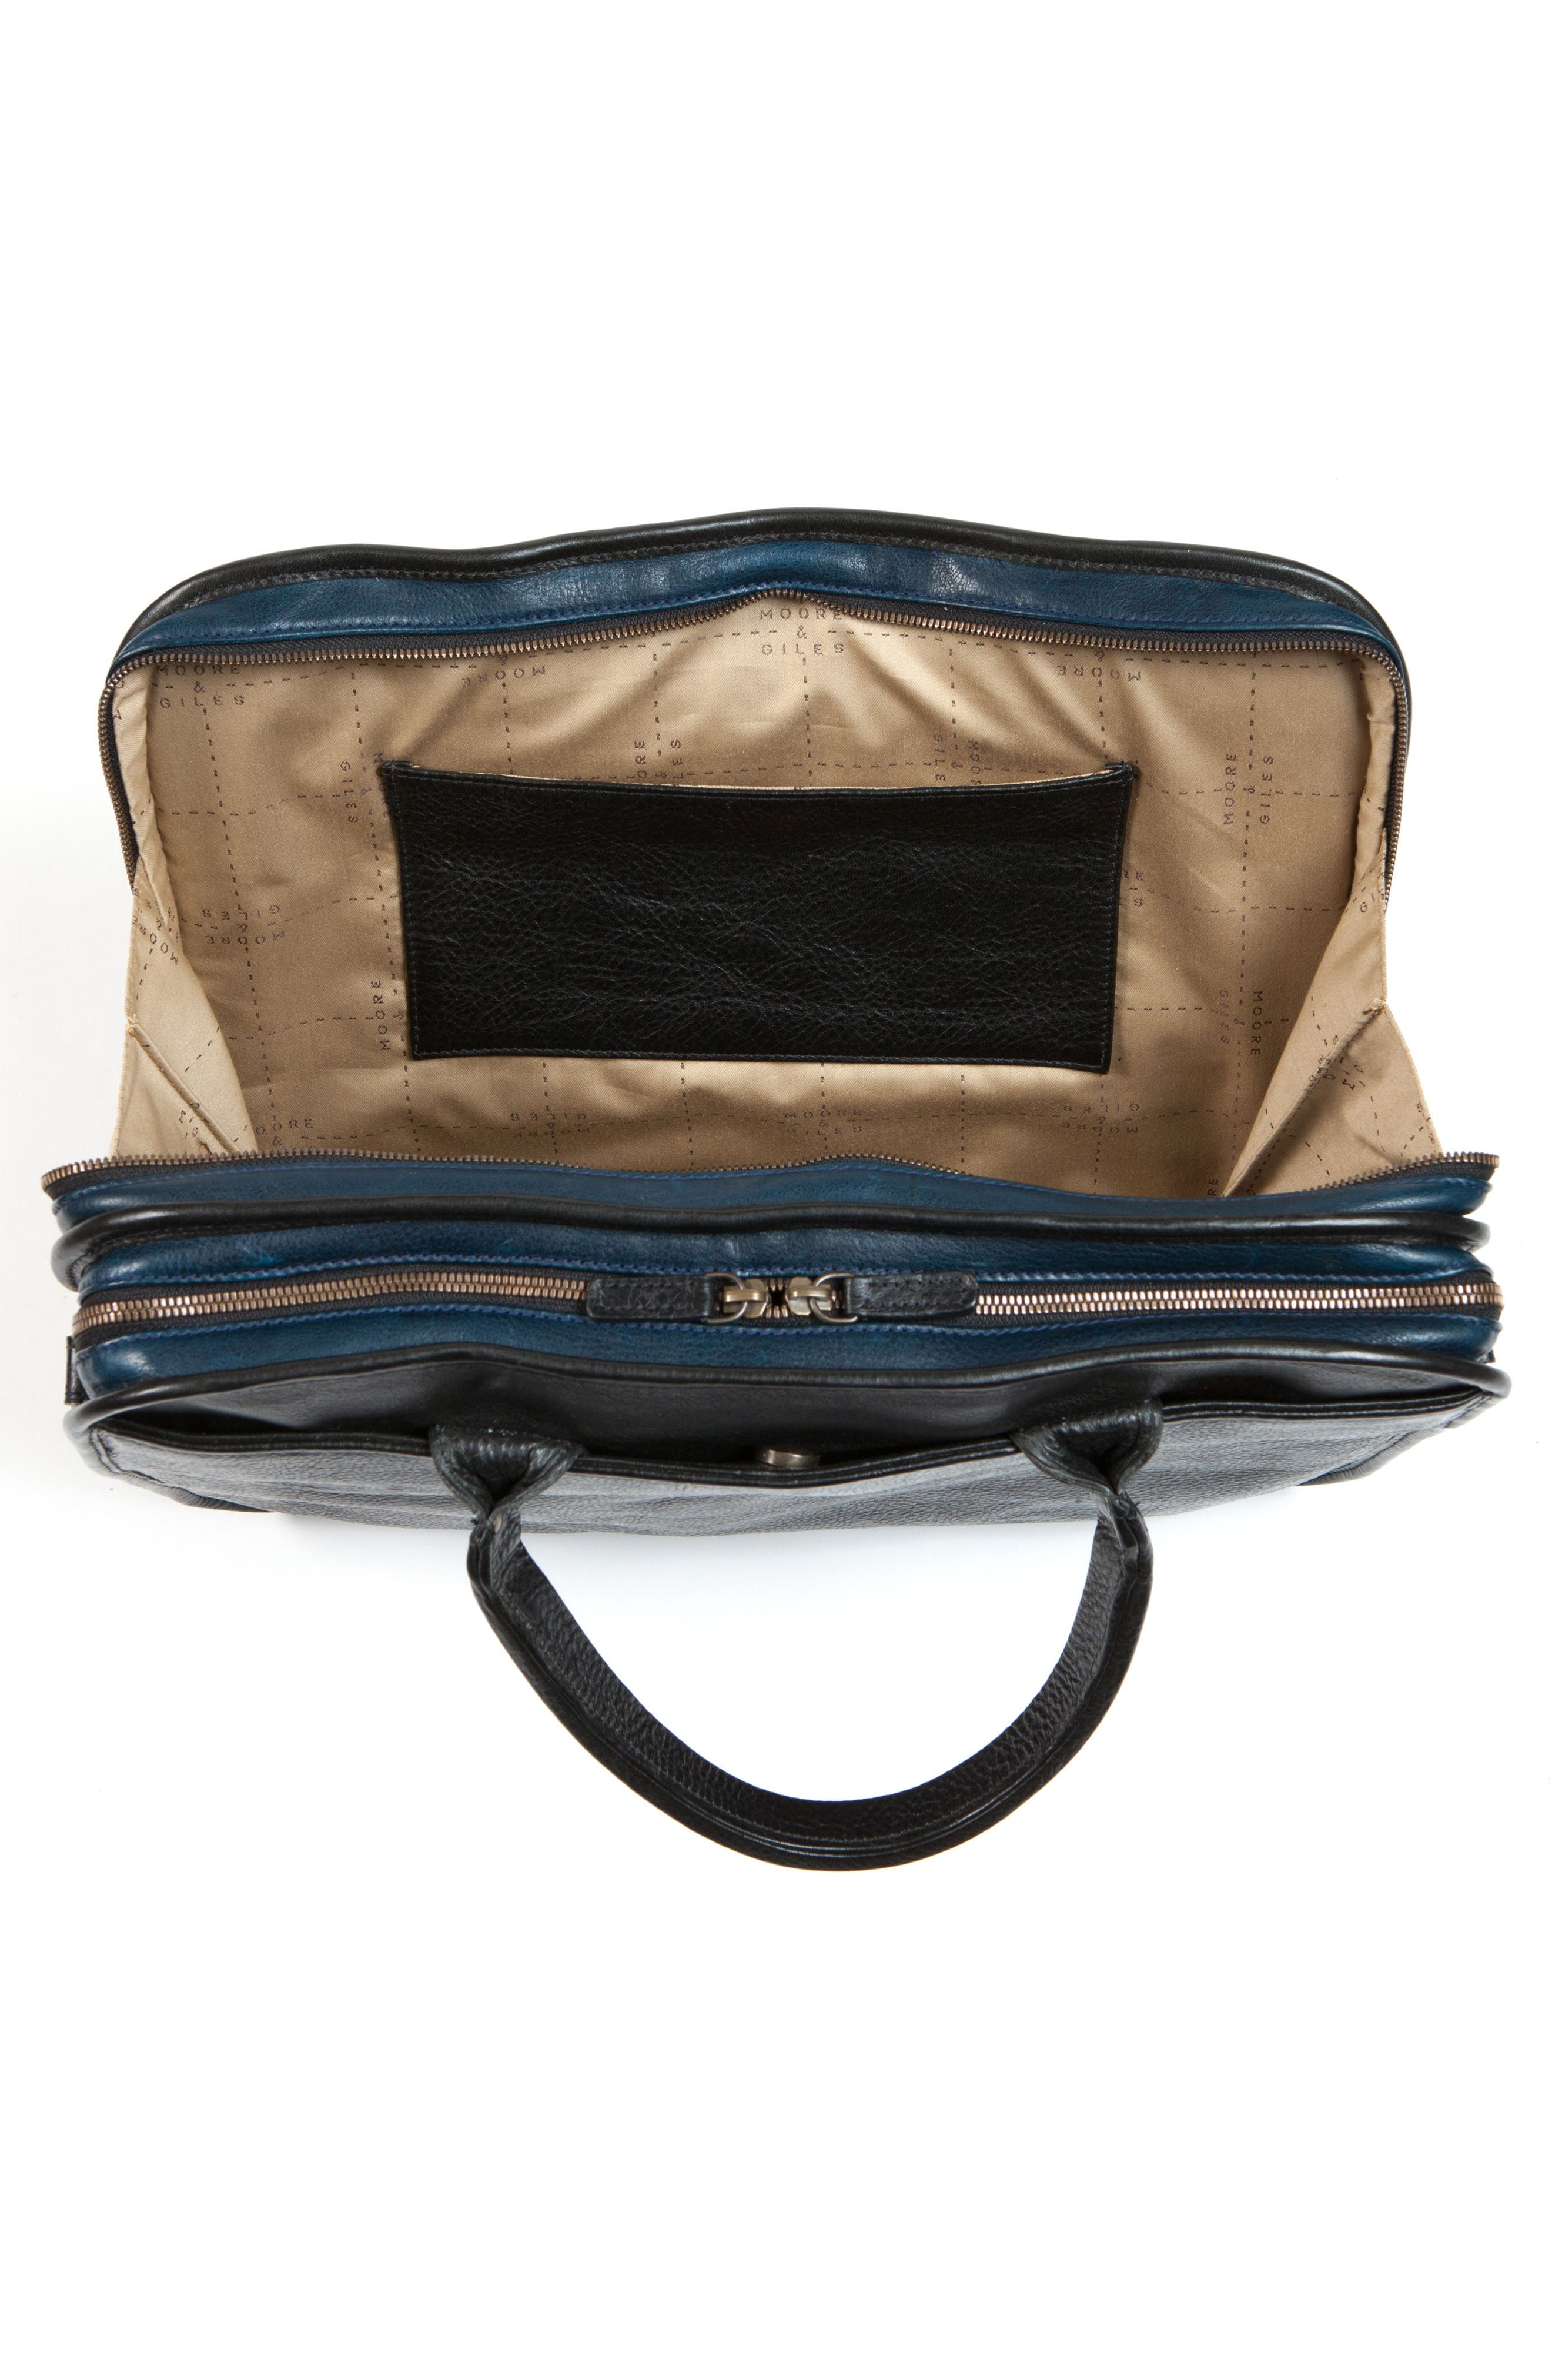 Miller Leather Briefcase,                             Alternate thumbnail 10, color,                             Titan Milled Navy And Gunmetal